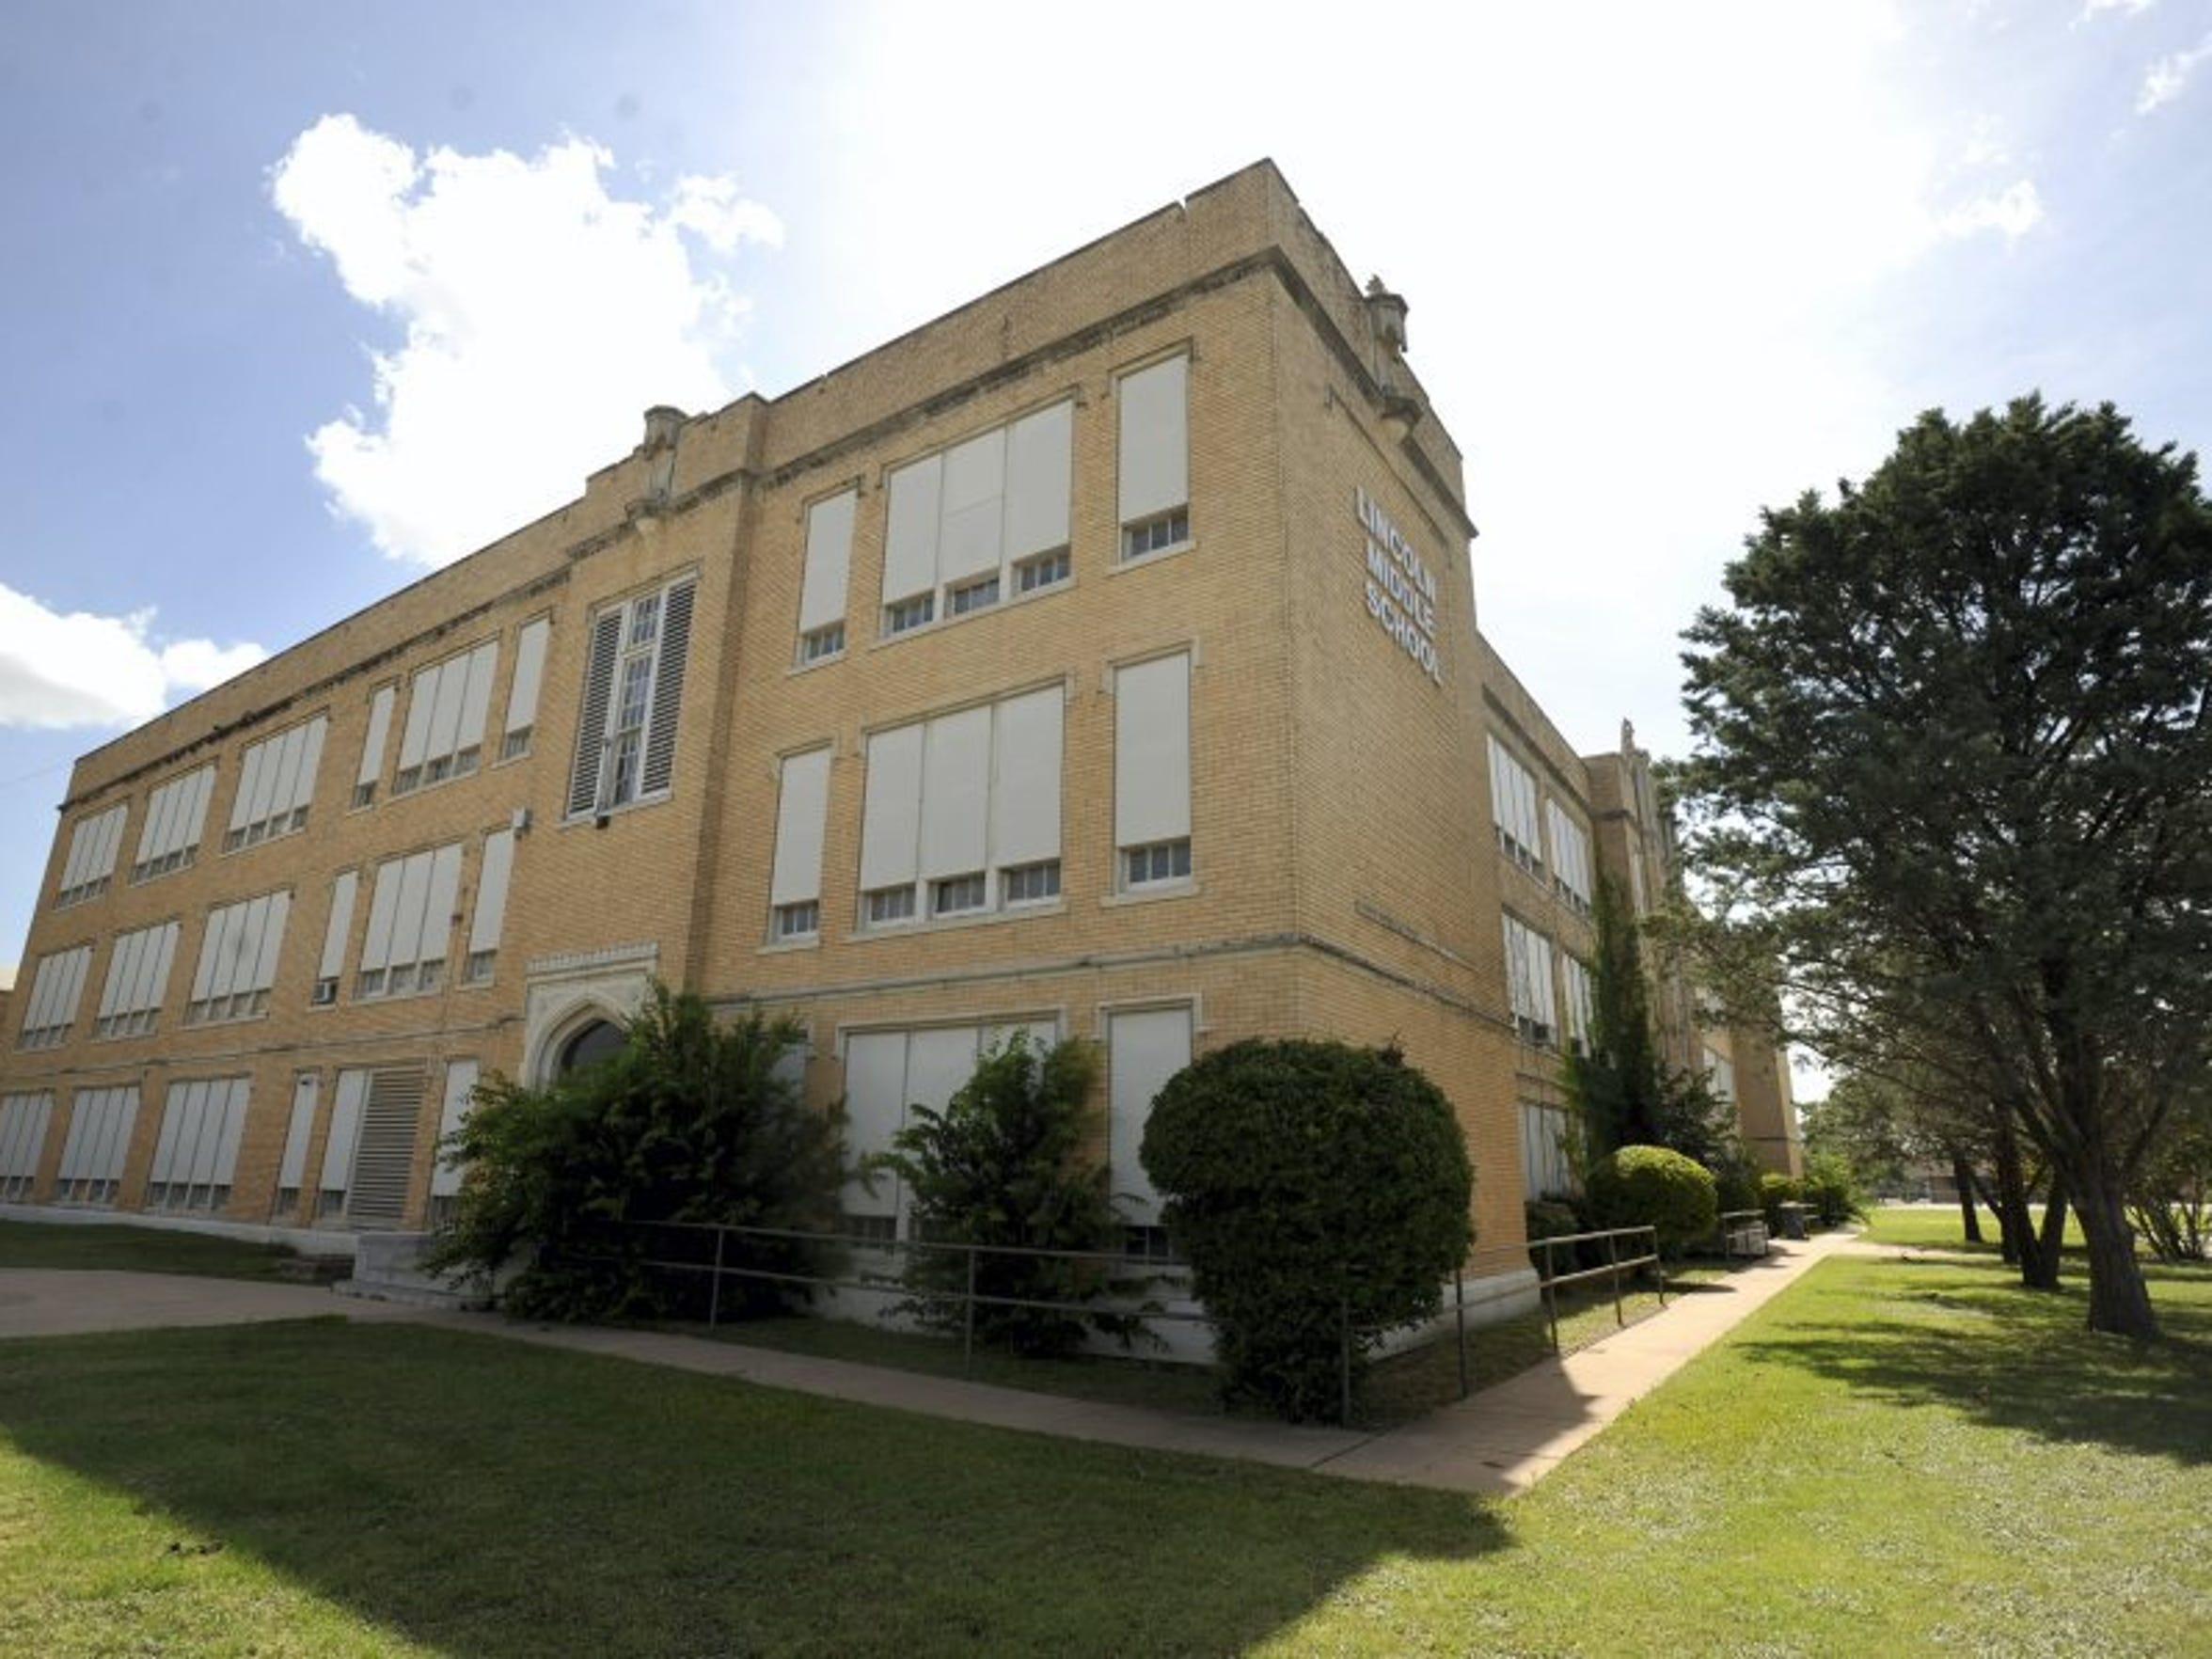 The former Lincoln Middle School building at South First Street opened as Abilene High School almost 100 years ago. It was constructed next to the railroad tracks and Bankhead Highway to make a statement to train passengers and highway travelers that the young town of Abilene was serious about education.